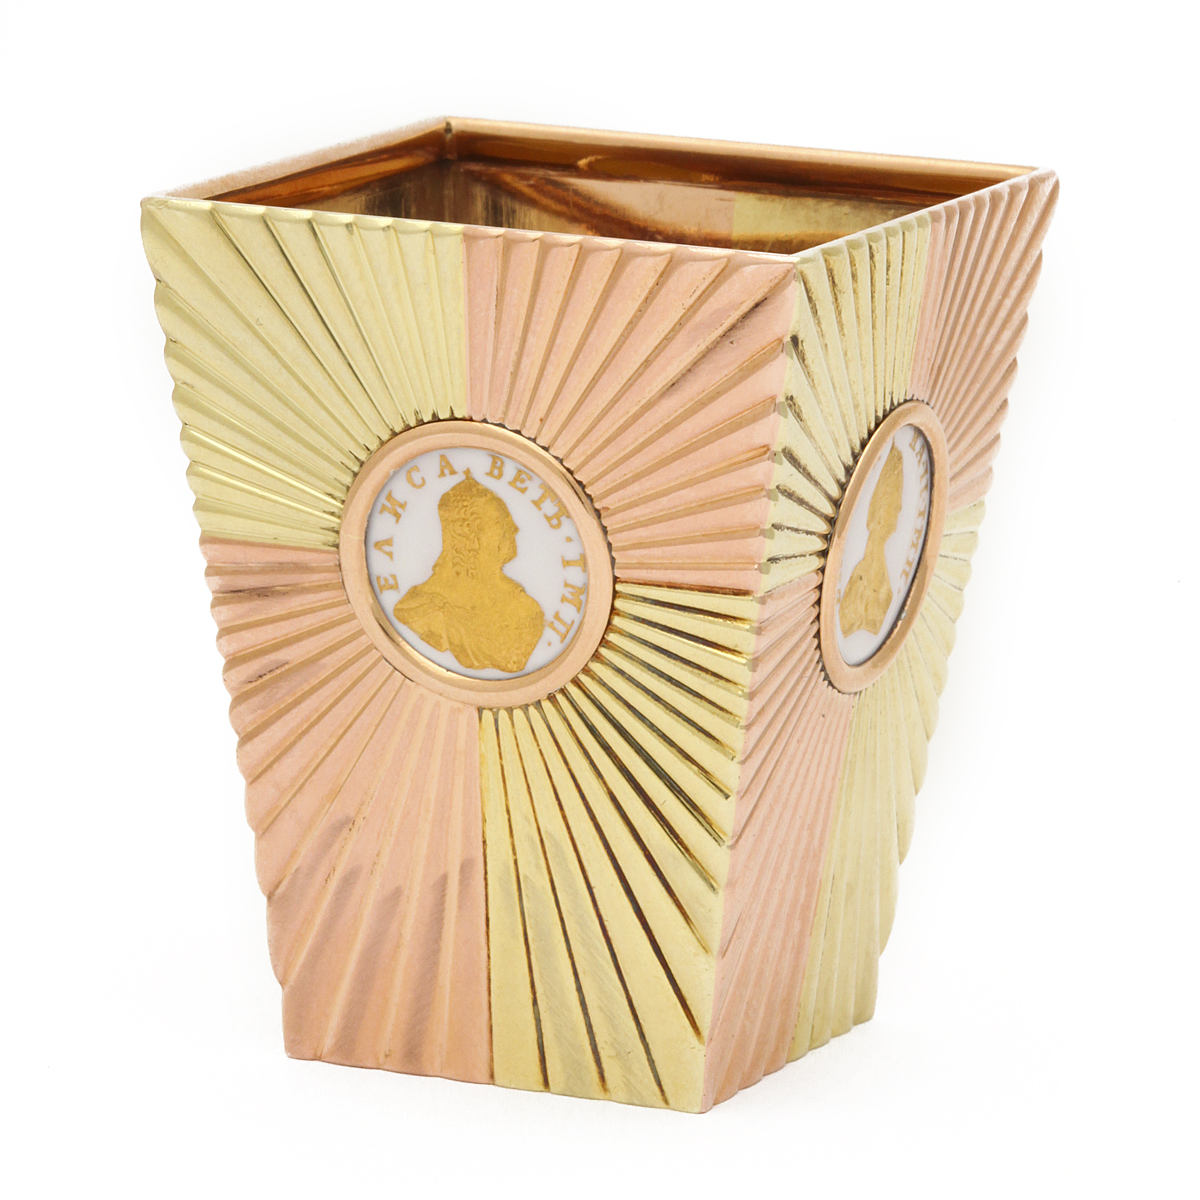 Rose Gold Trash Can A La Vieille Russie Fabergé Miniature Waste Basket